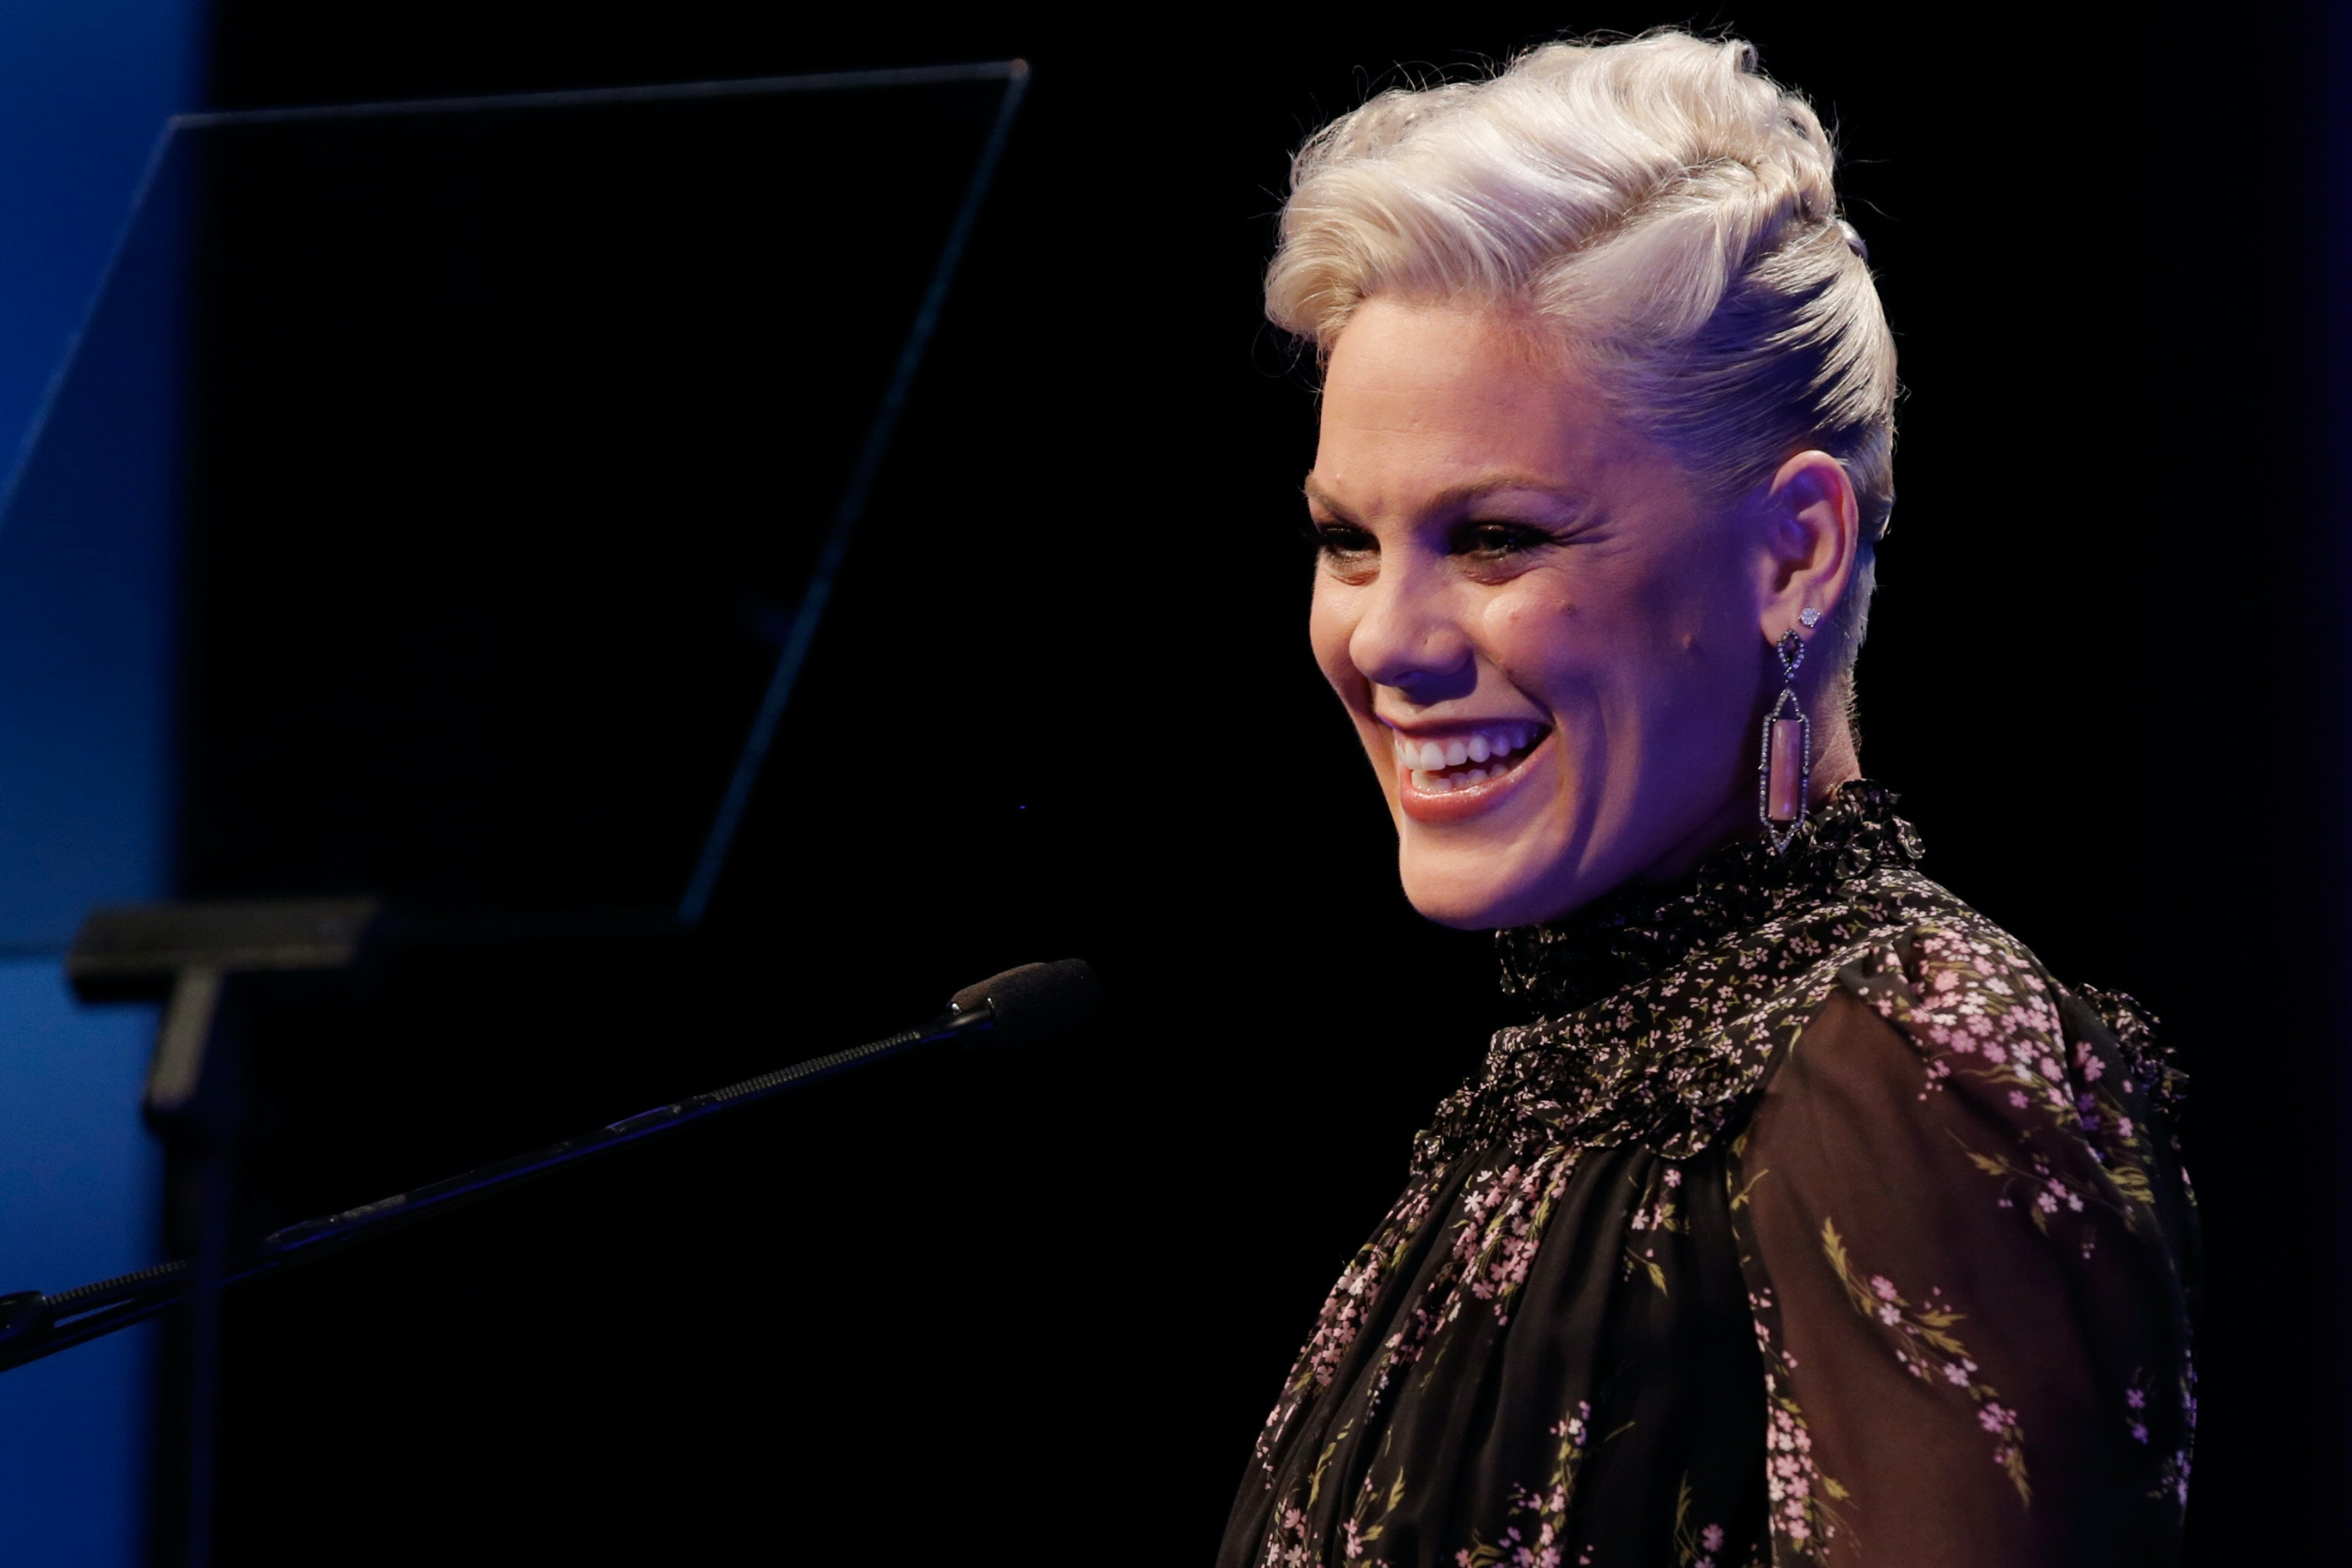 Pink Reveals Her Weight, Says She Doesn't Feel Obese